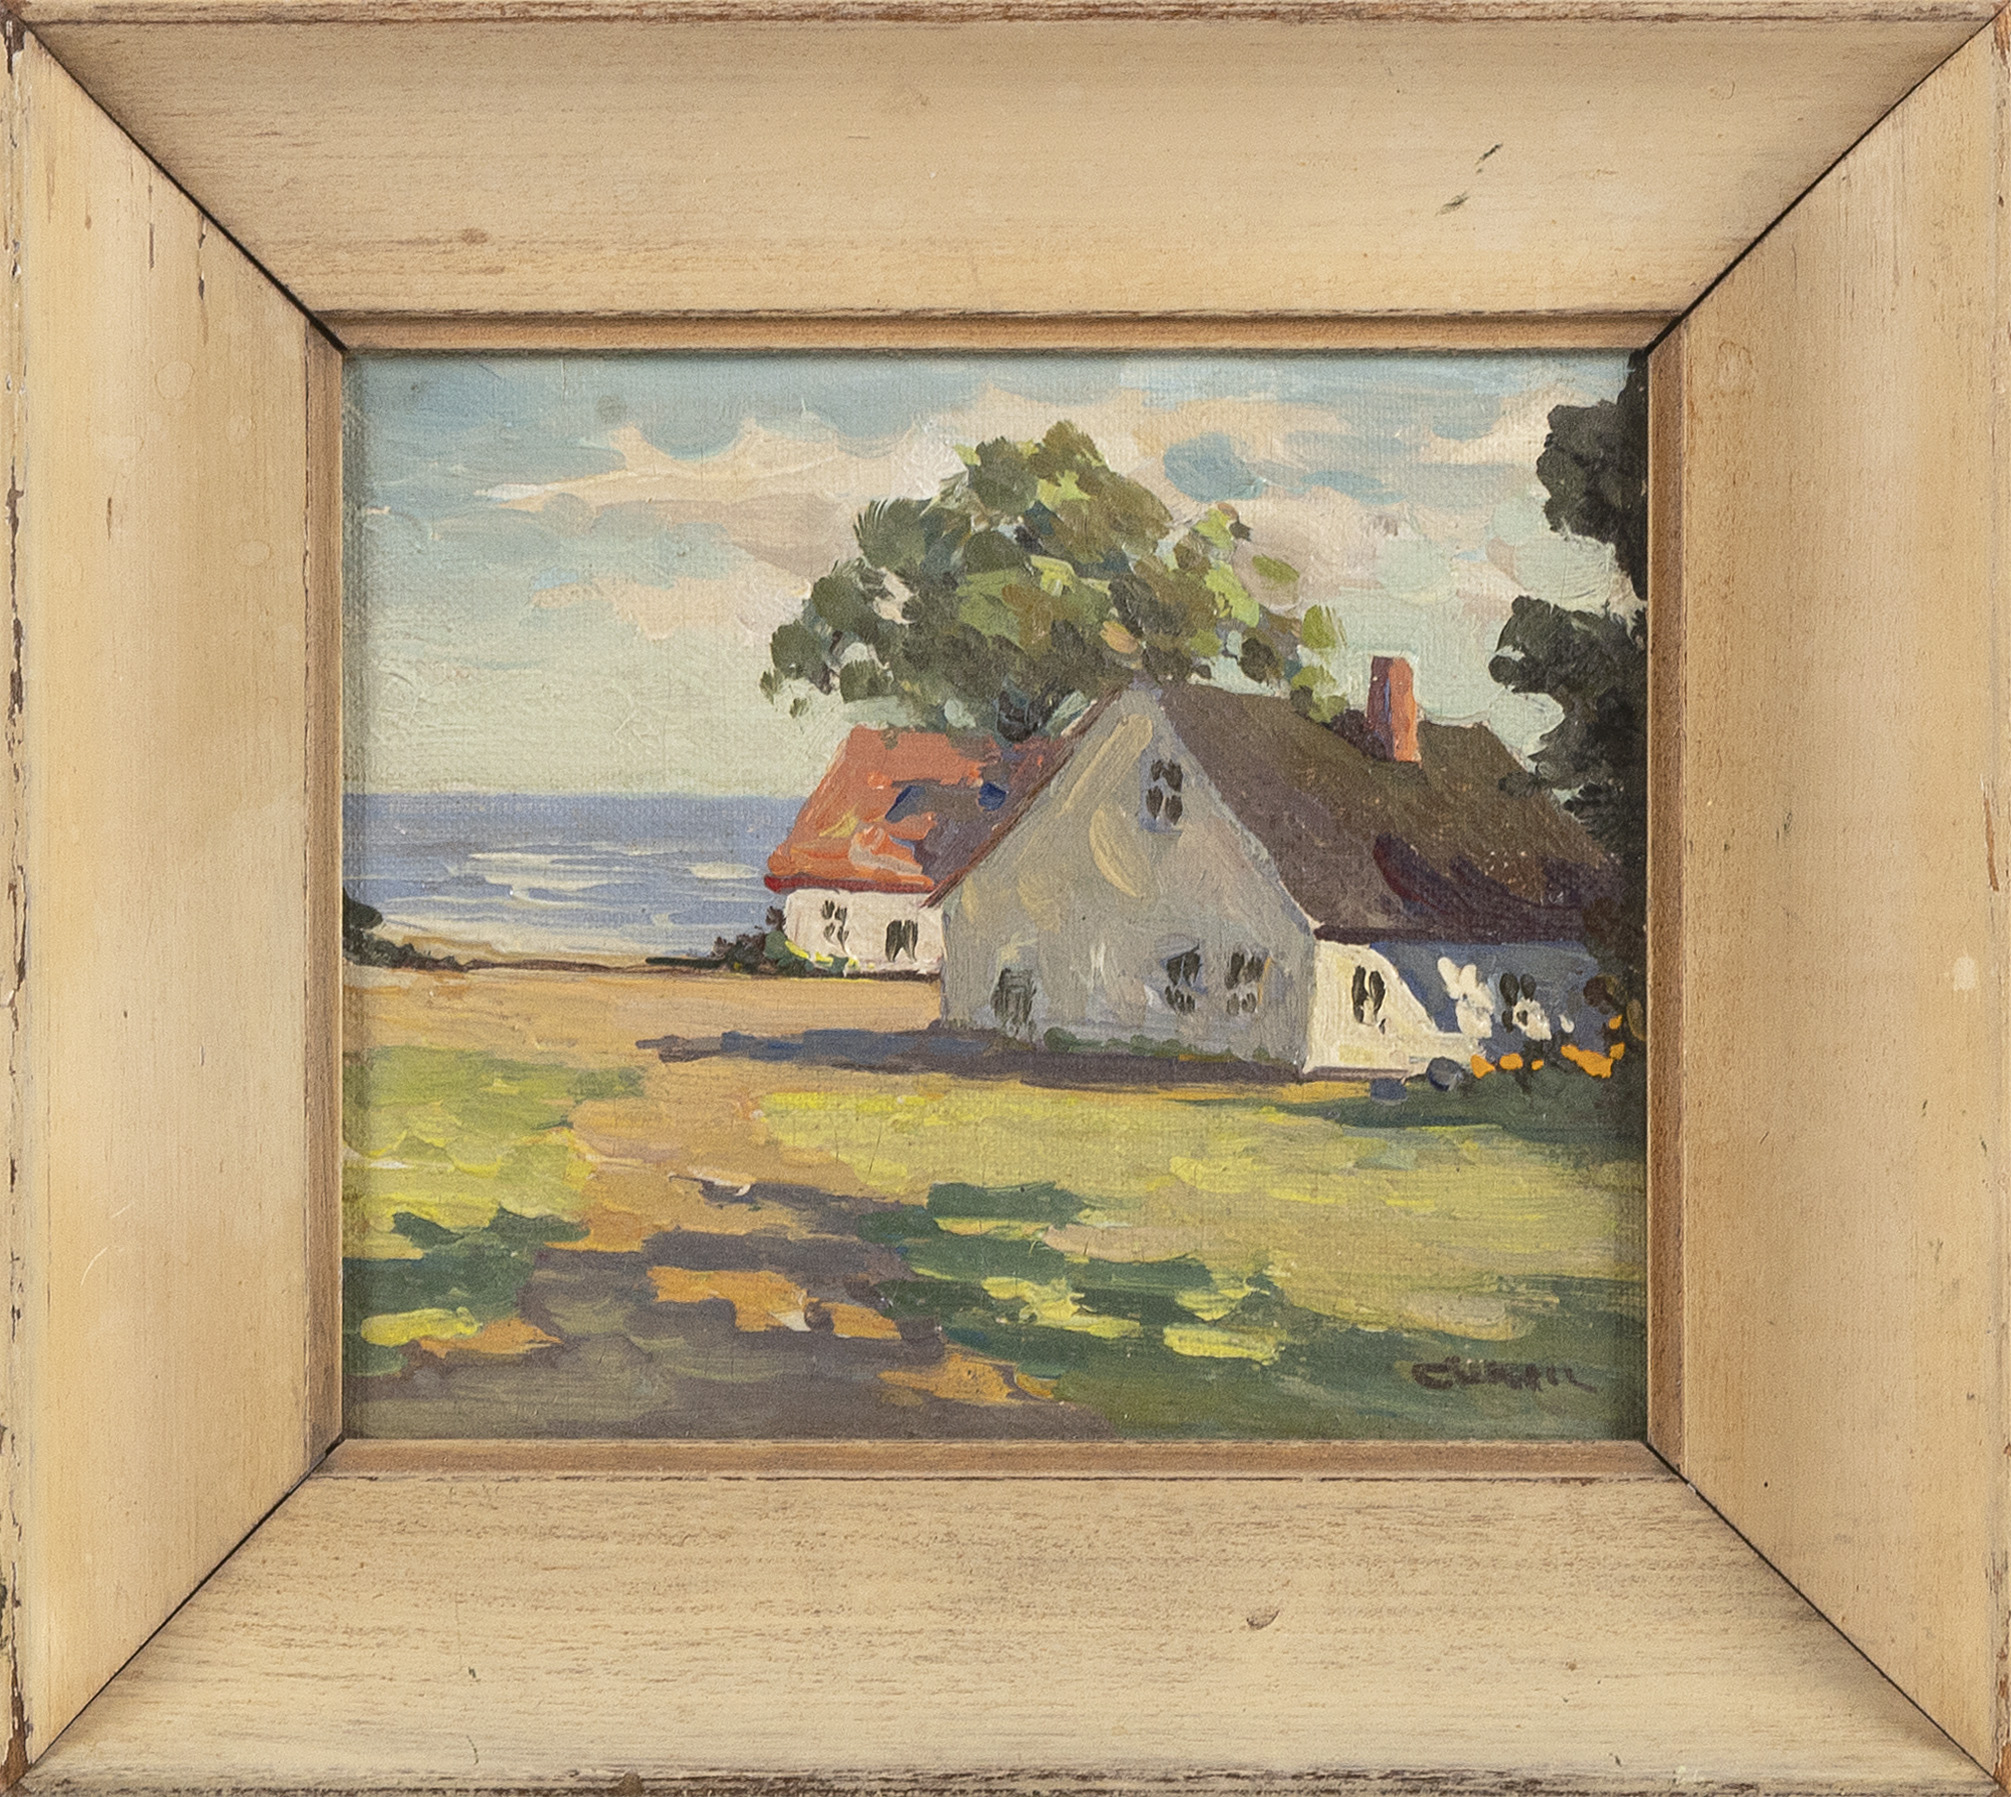 IRENE STRY (Massachusetts, 1904-1963), Cottages by the water., Oil on canvas board, 5